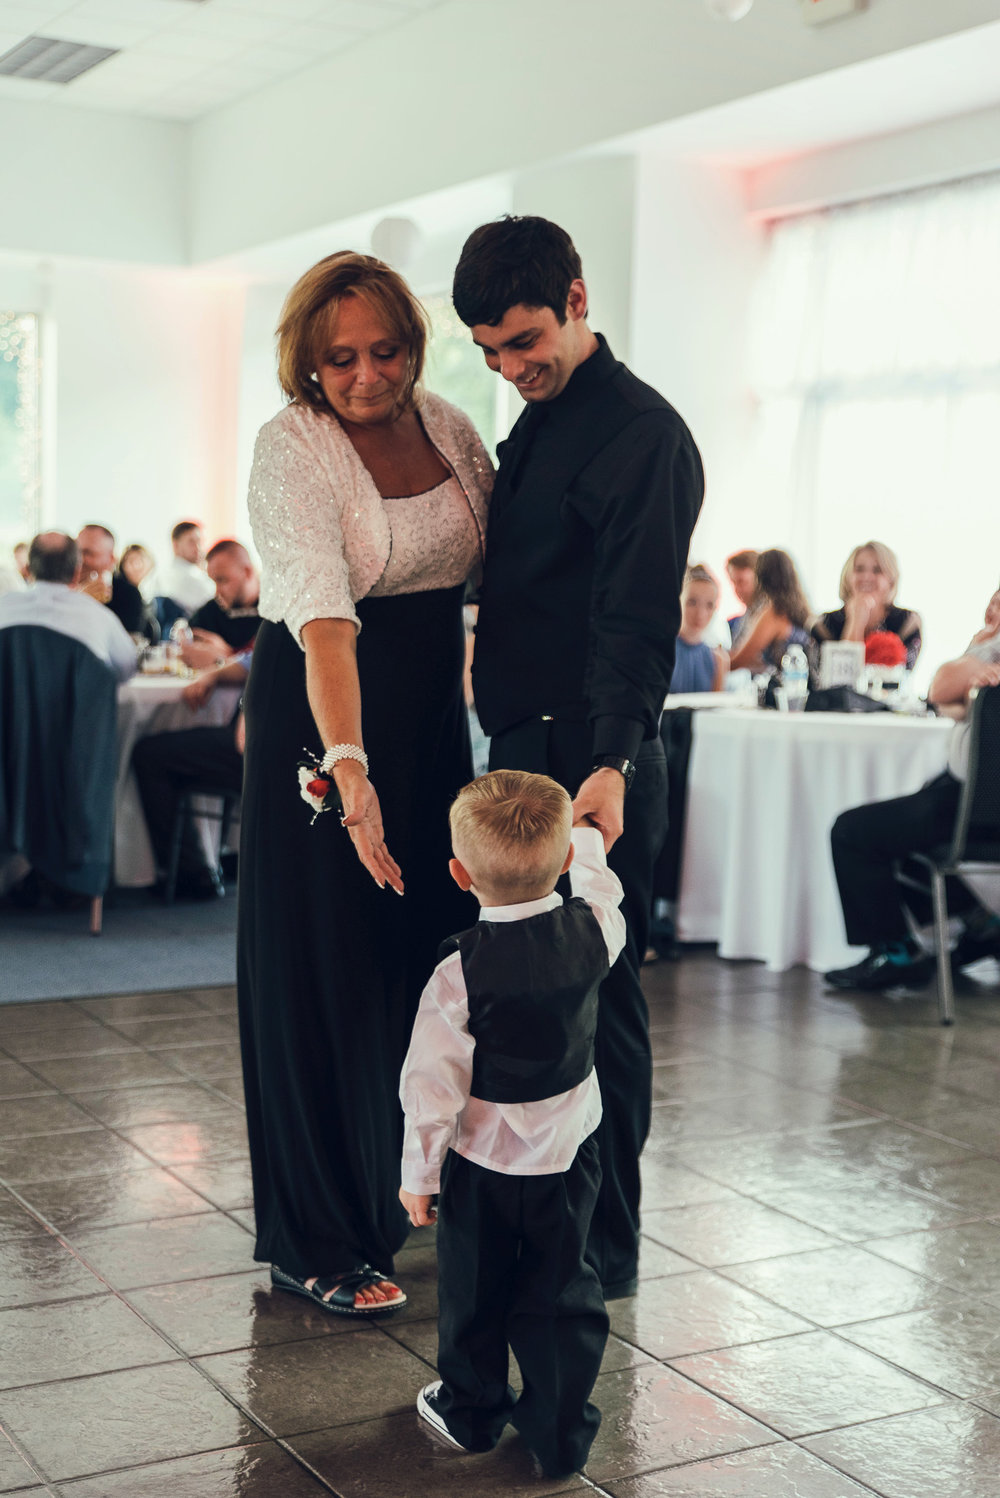 Conner_Wedding_Edits_Web-324.jpg